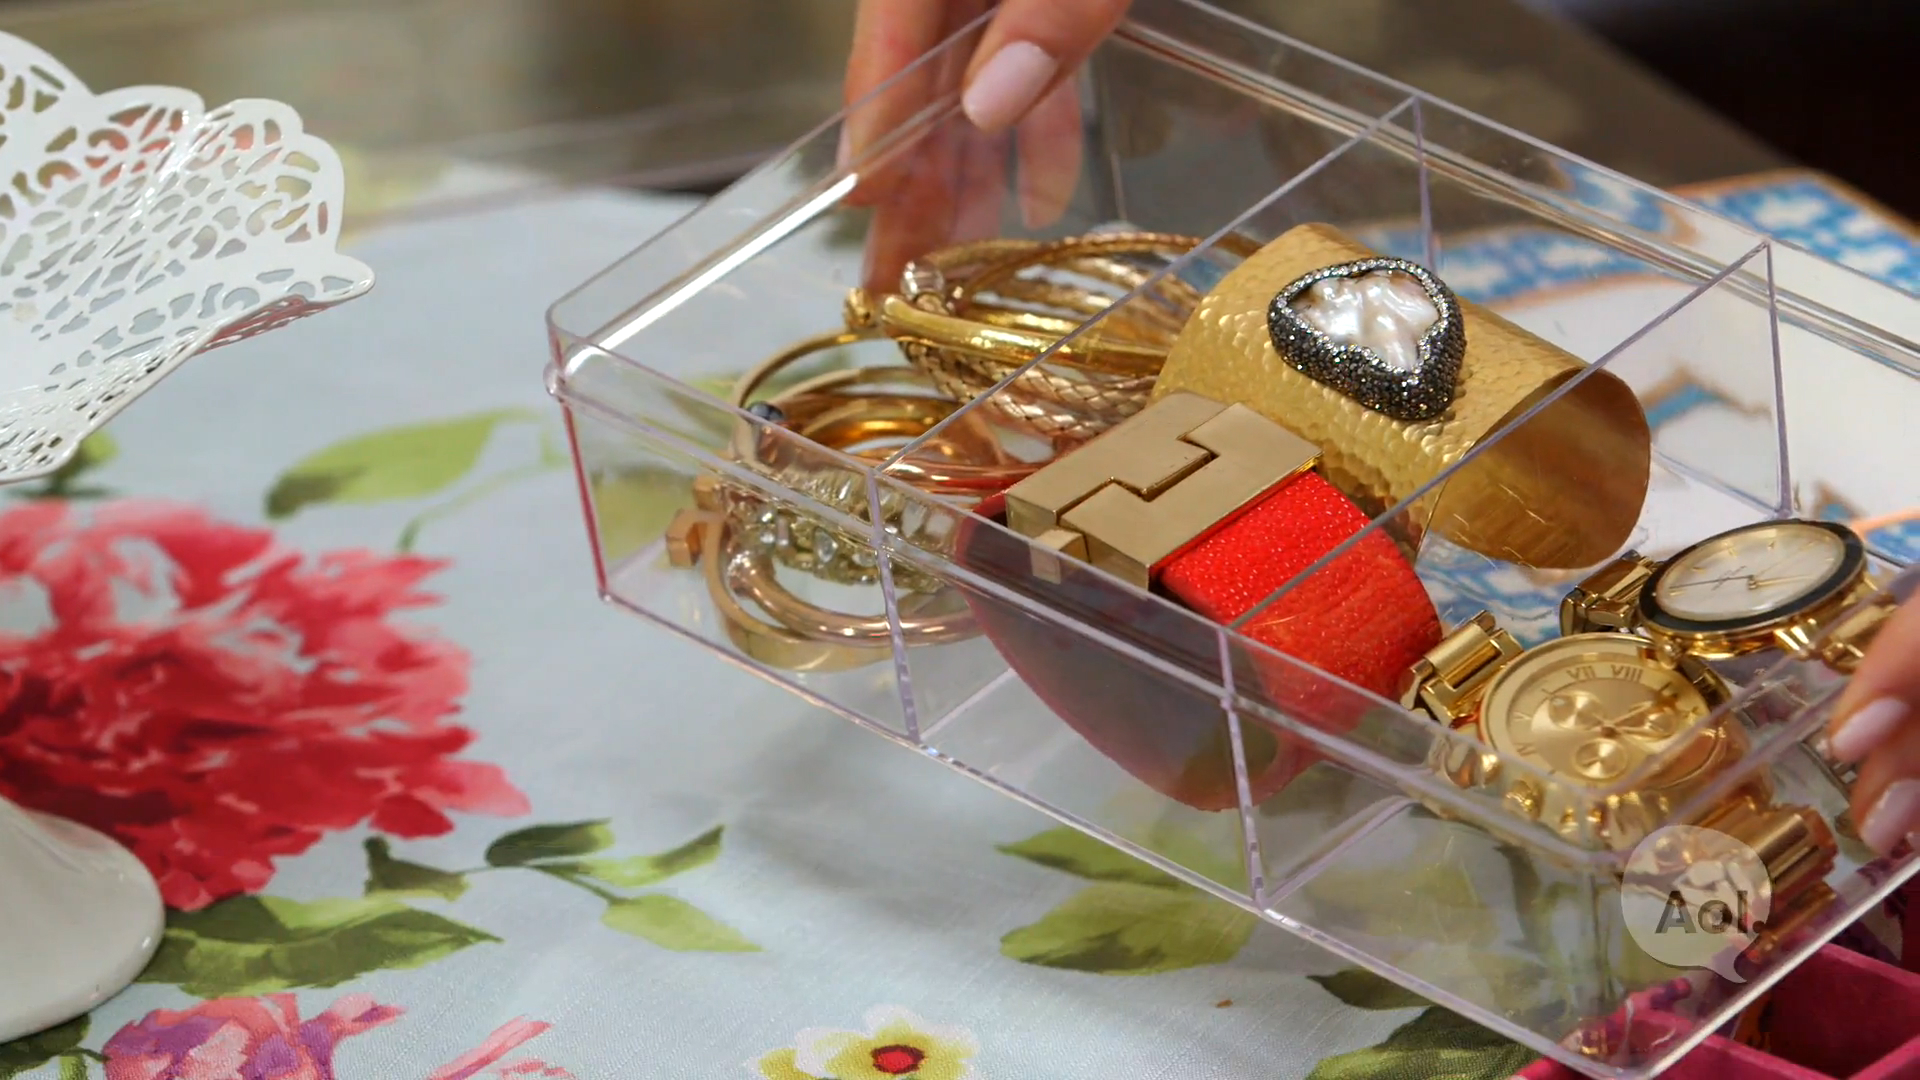 Fashion Fix: Organize Your Jewelry